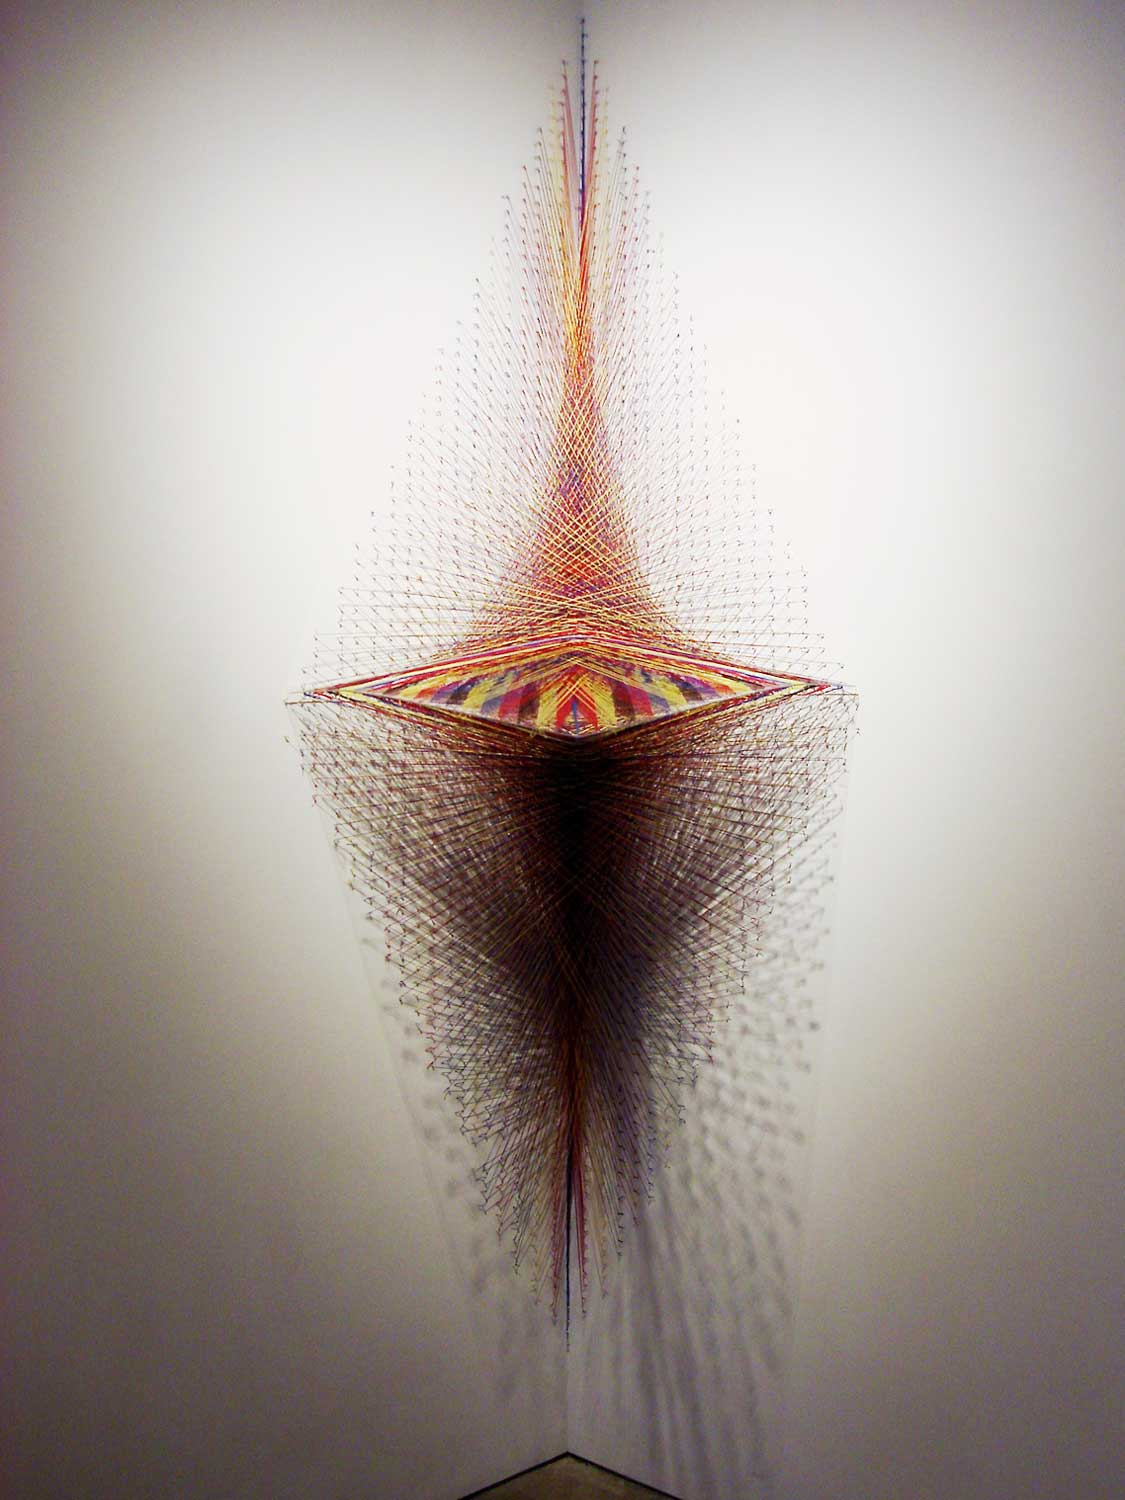 3D Thread Installation by Kendra Werst | Yellowtrace